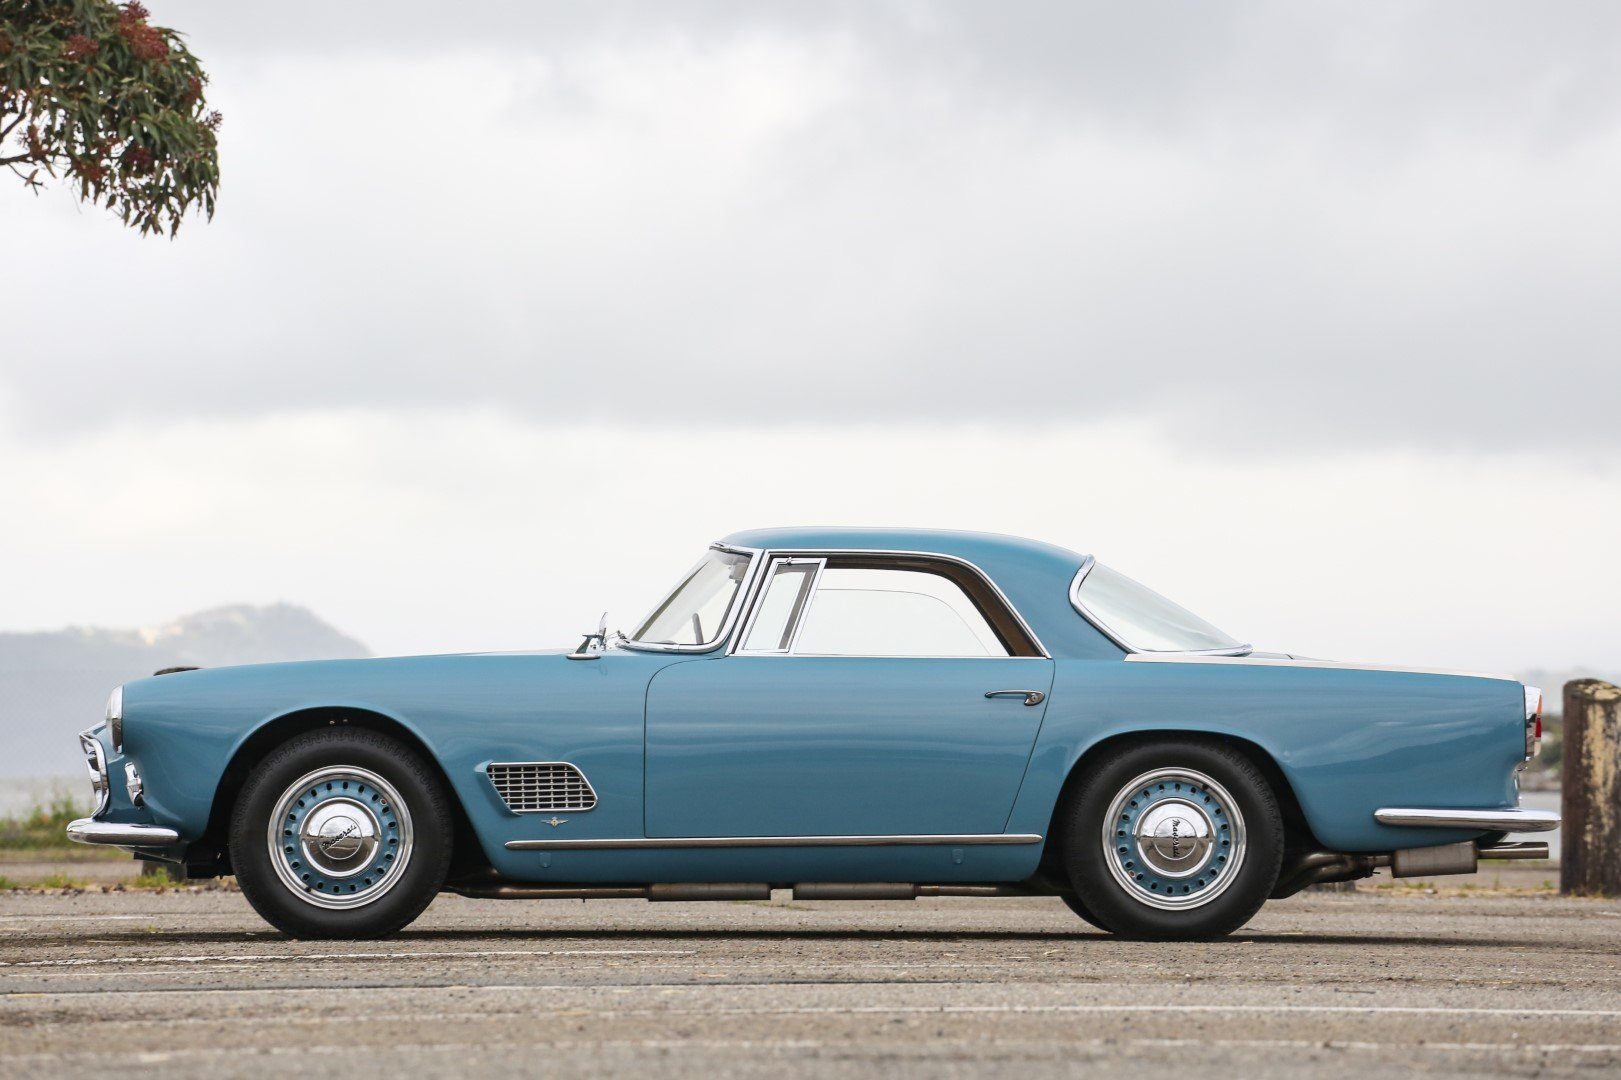 1959 Maserati 3500 GT - GS CARS For Sale (picture 3 of 3)